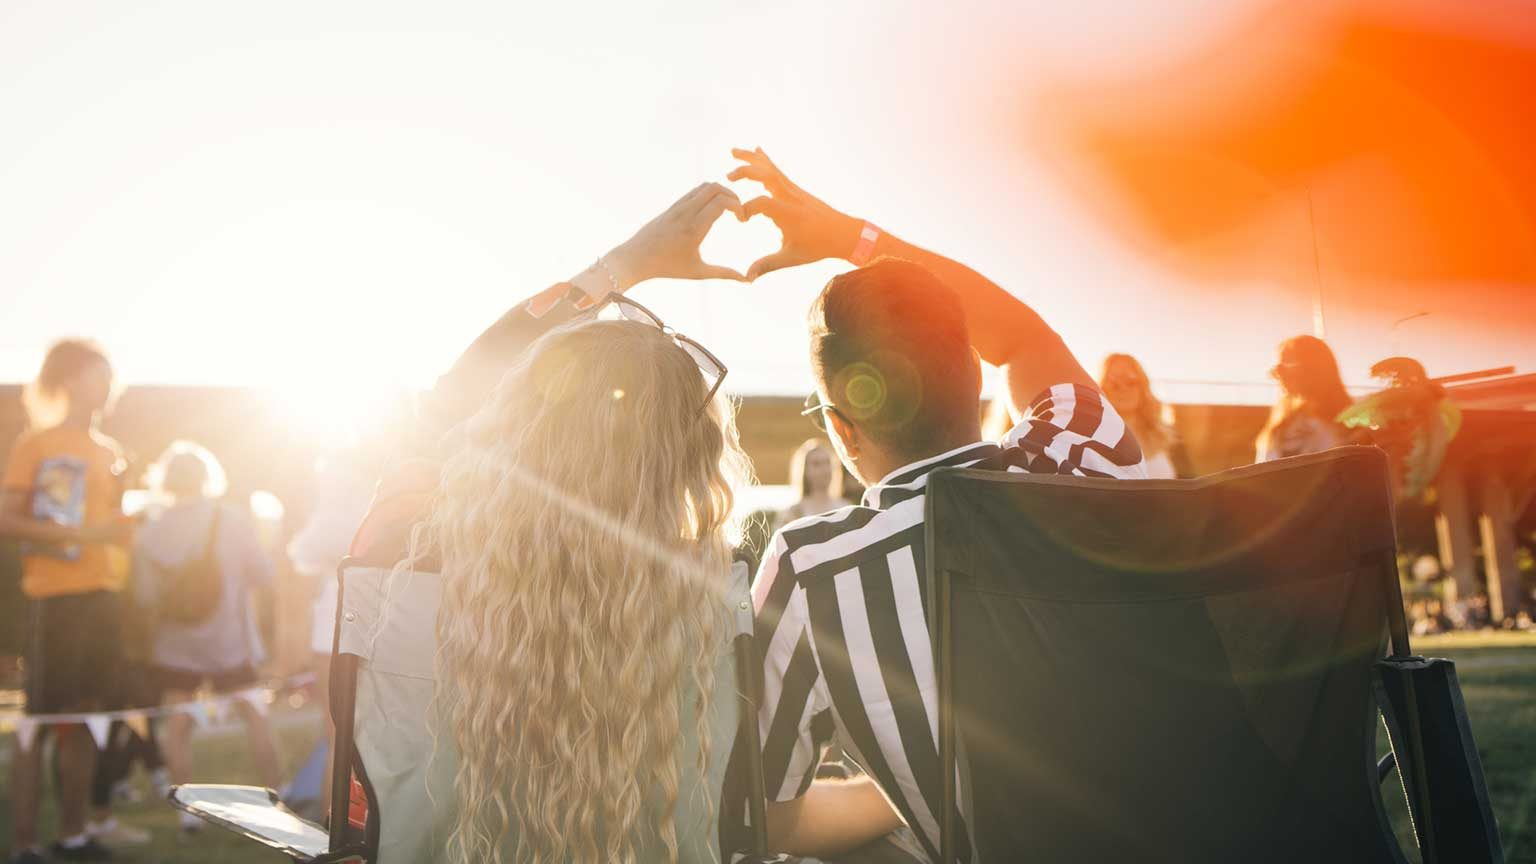 Couple at a festival holding their hands up in the shape of a heart.